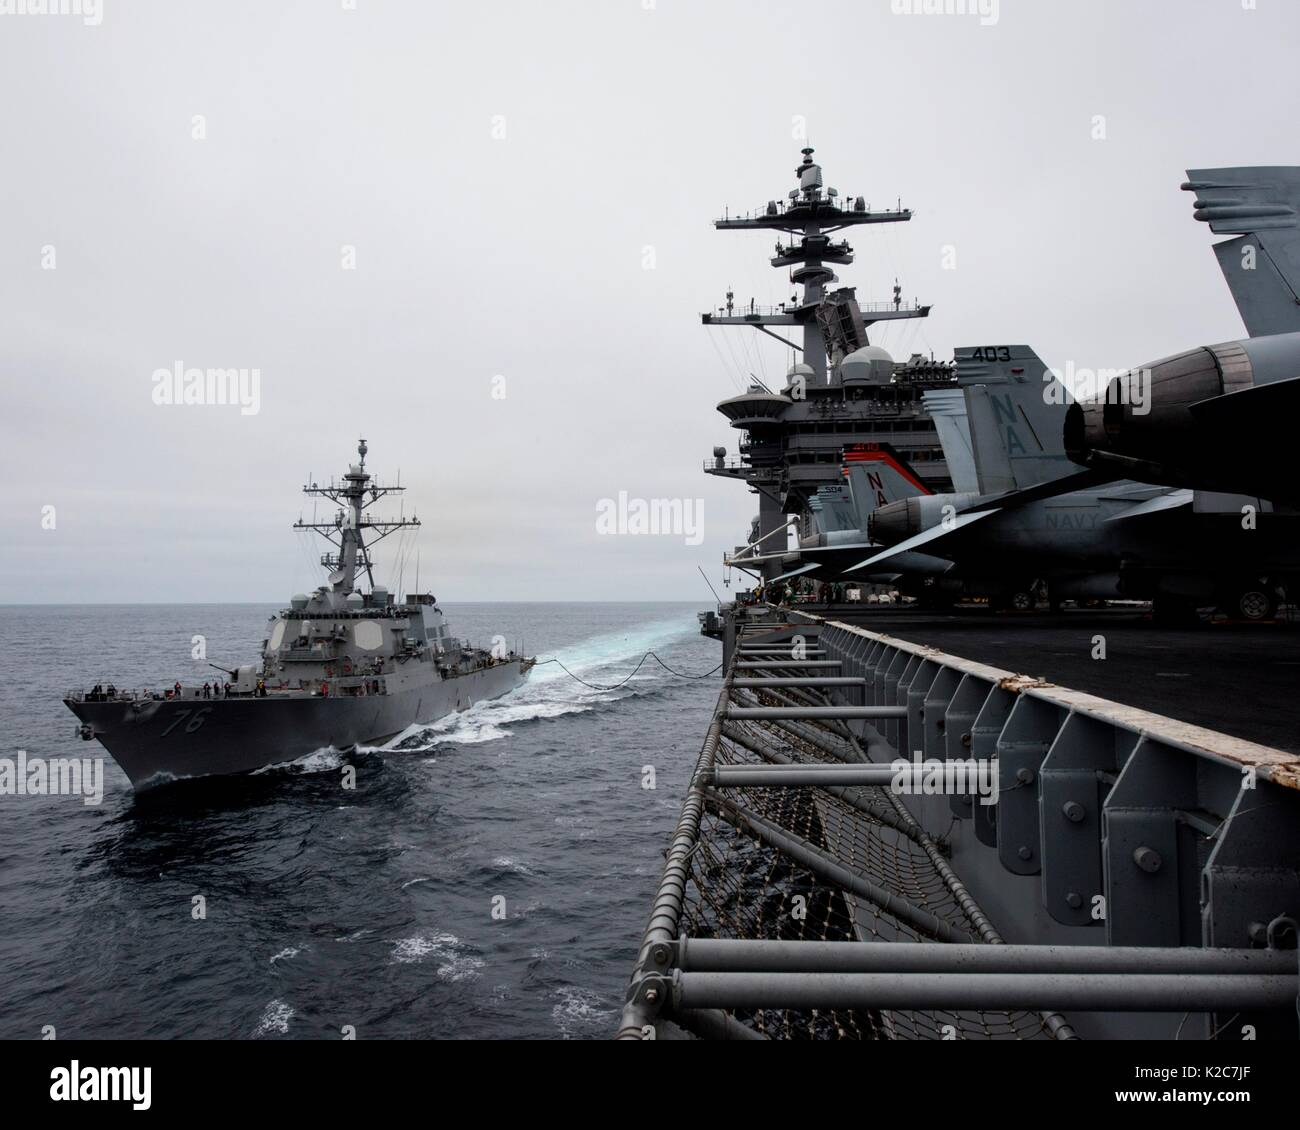 The U.S. Navy Arleigh Burke-class guided-missile destroyer USS Higgins (left) steams in formation alongside the U.S. Navy Nimitz-class aircraft carrier USS Theodore Roosevelt August 14, 2017 in the Pacific Ocean. - Stock Image